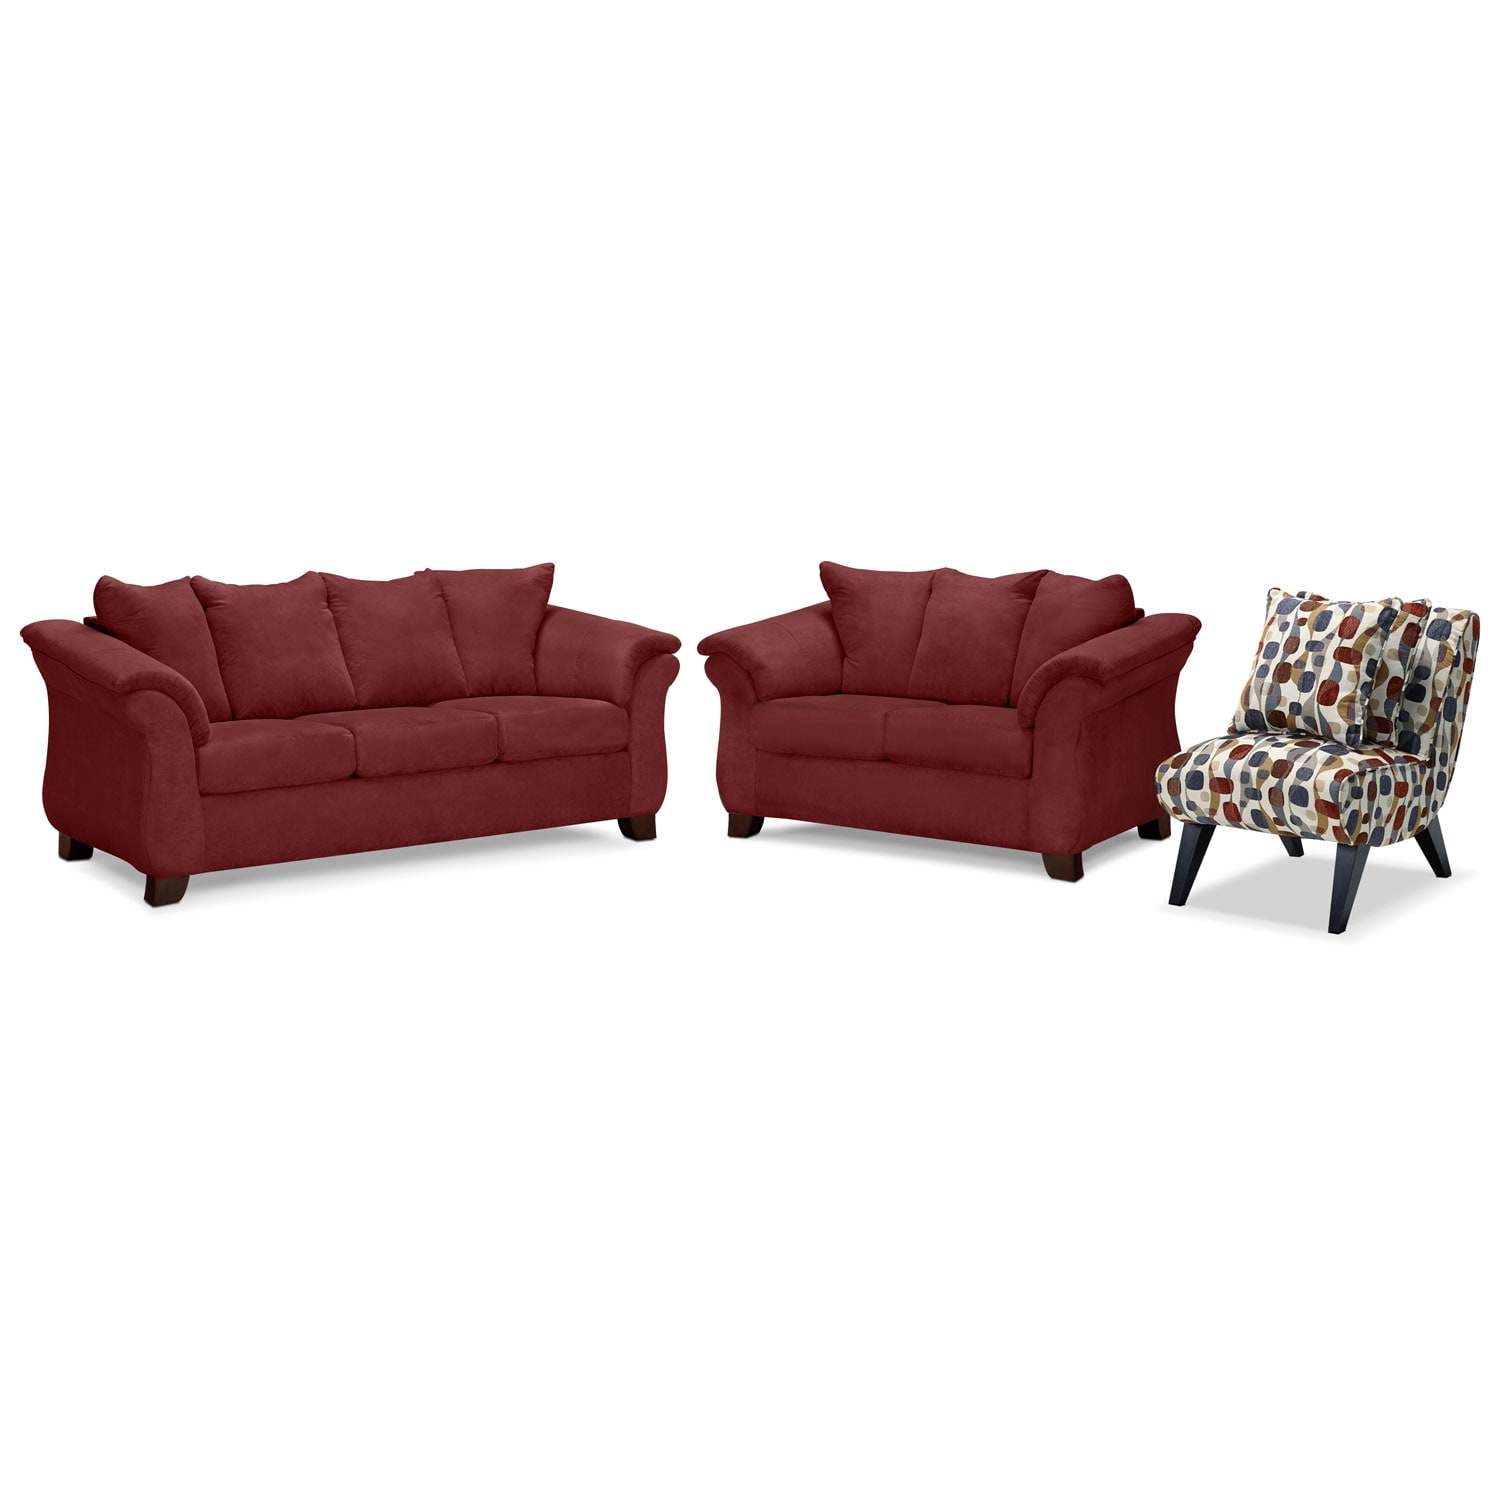 [Adrian Red 3 Pc. Living Room w/ Accent Chair]